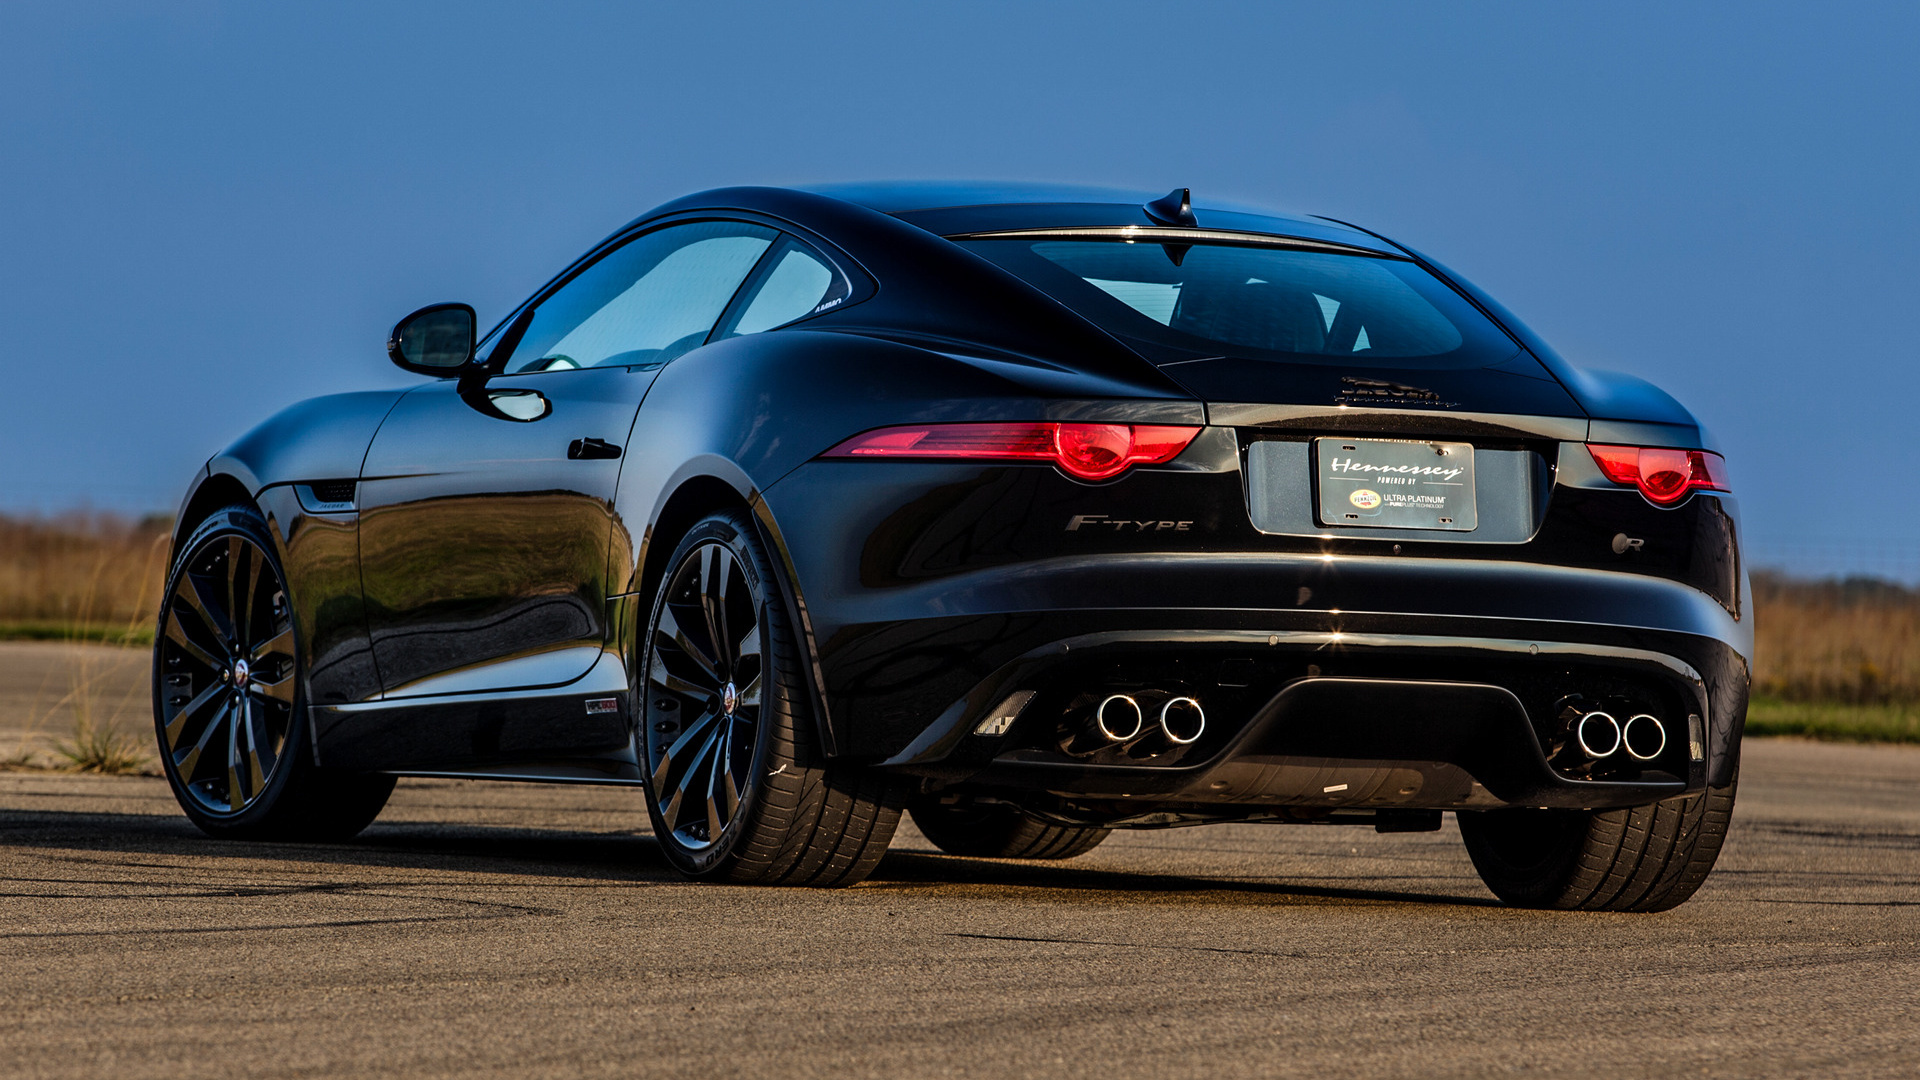 jaguar f-type r coupe hpe600hennessey (2015) wallpapers and hd